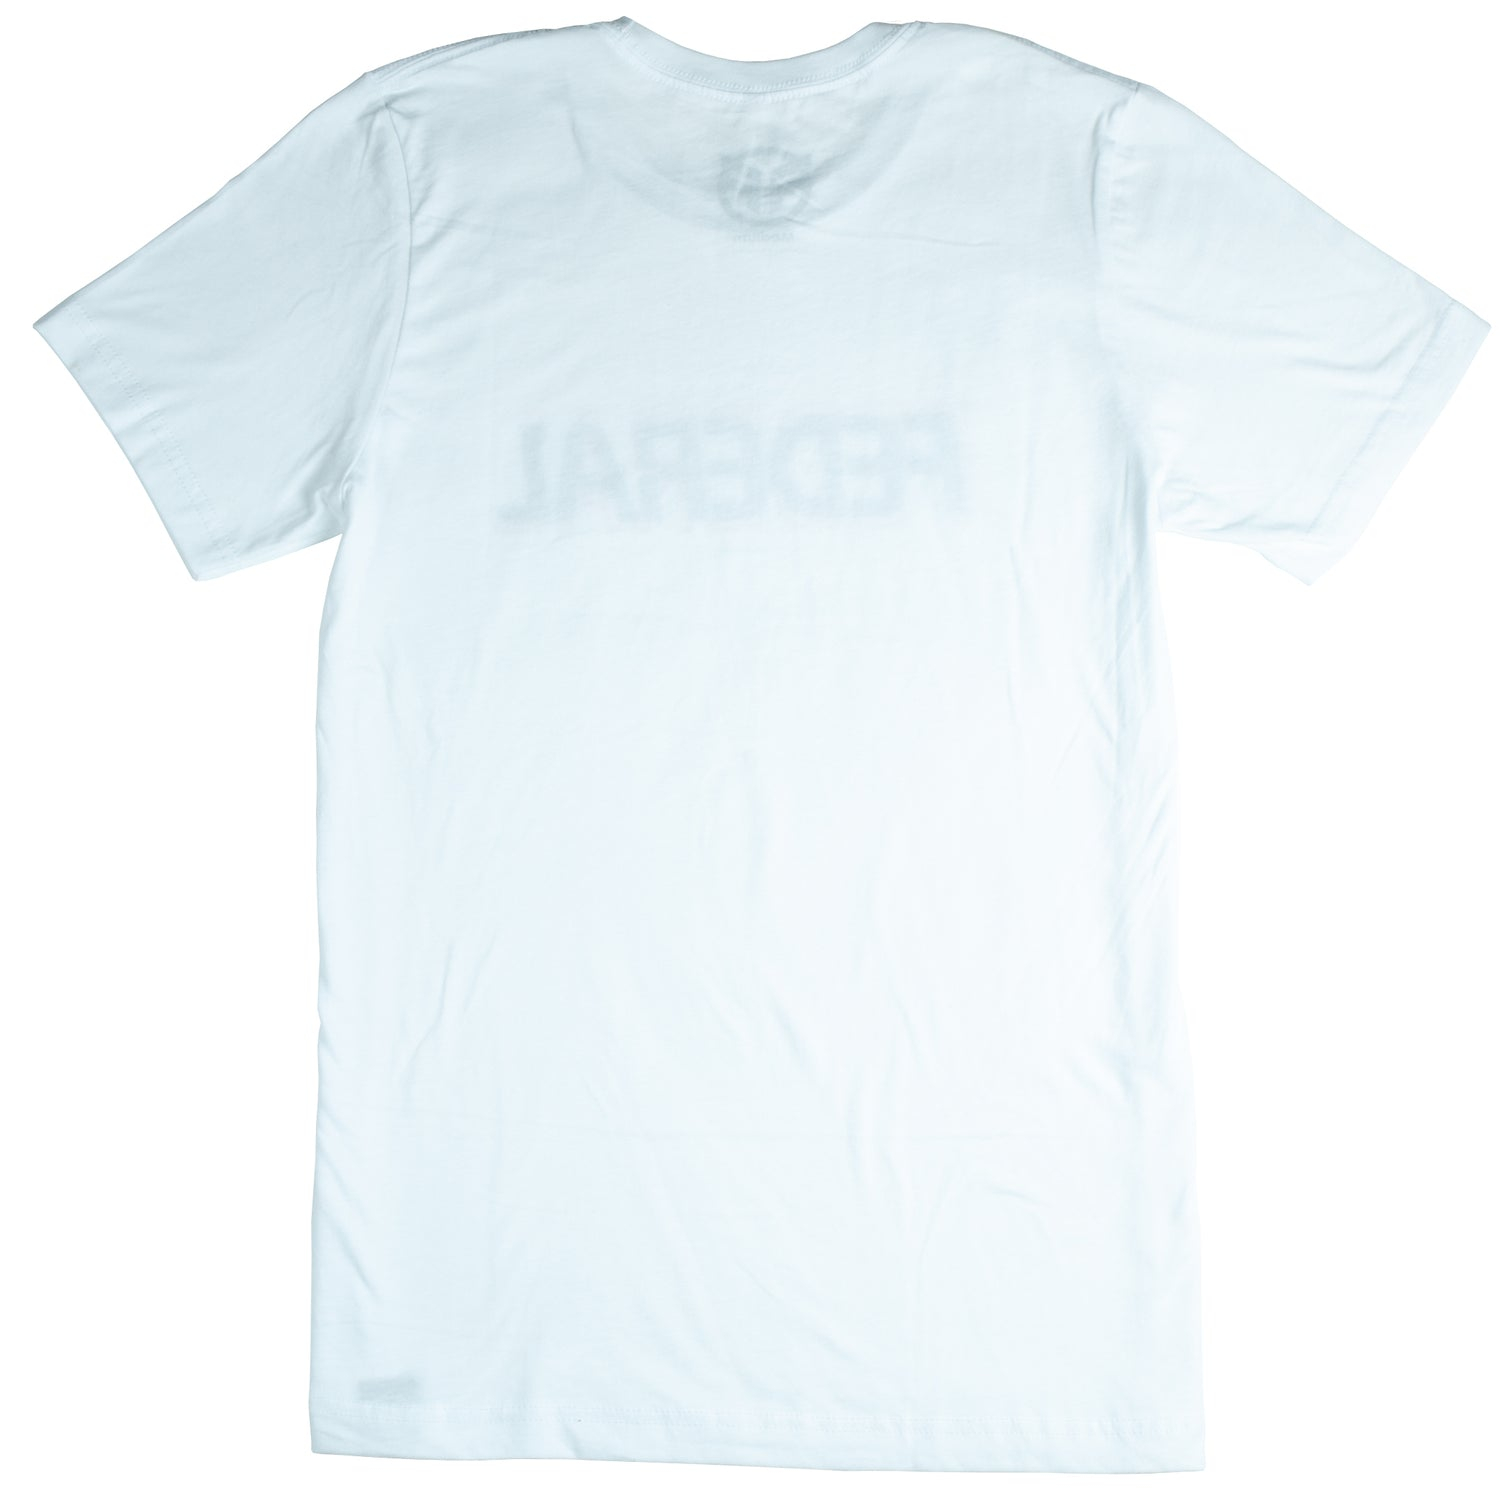 Federal Double Vision T-Shirt - White